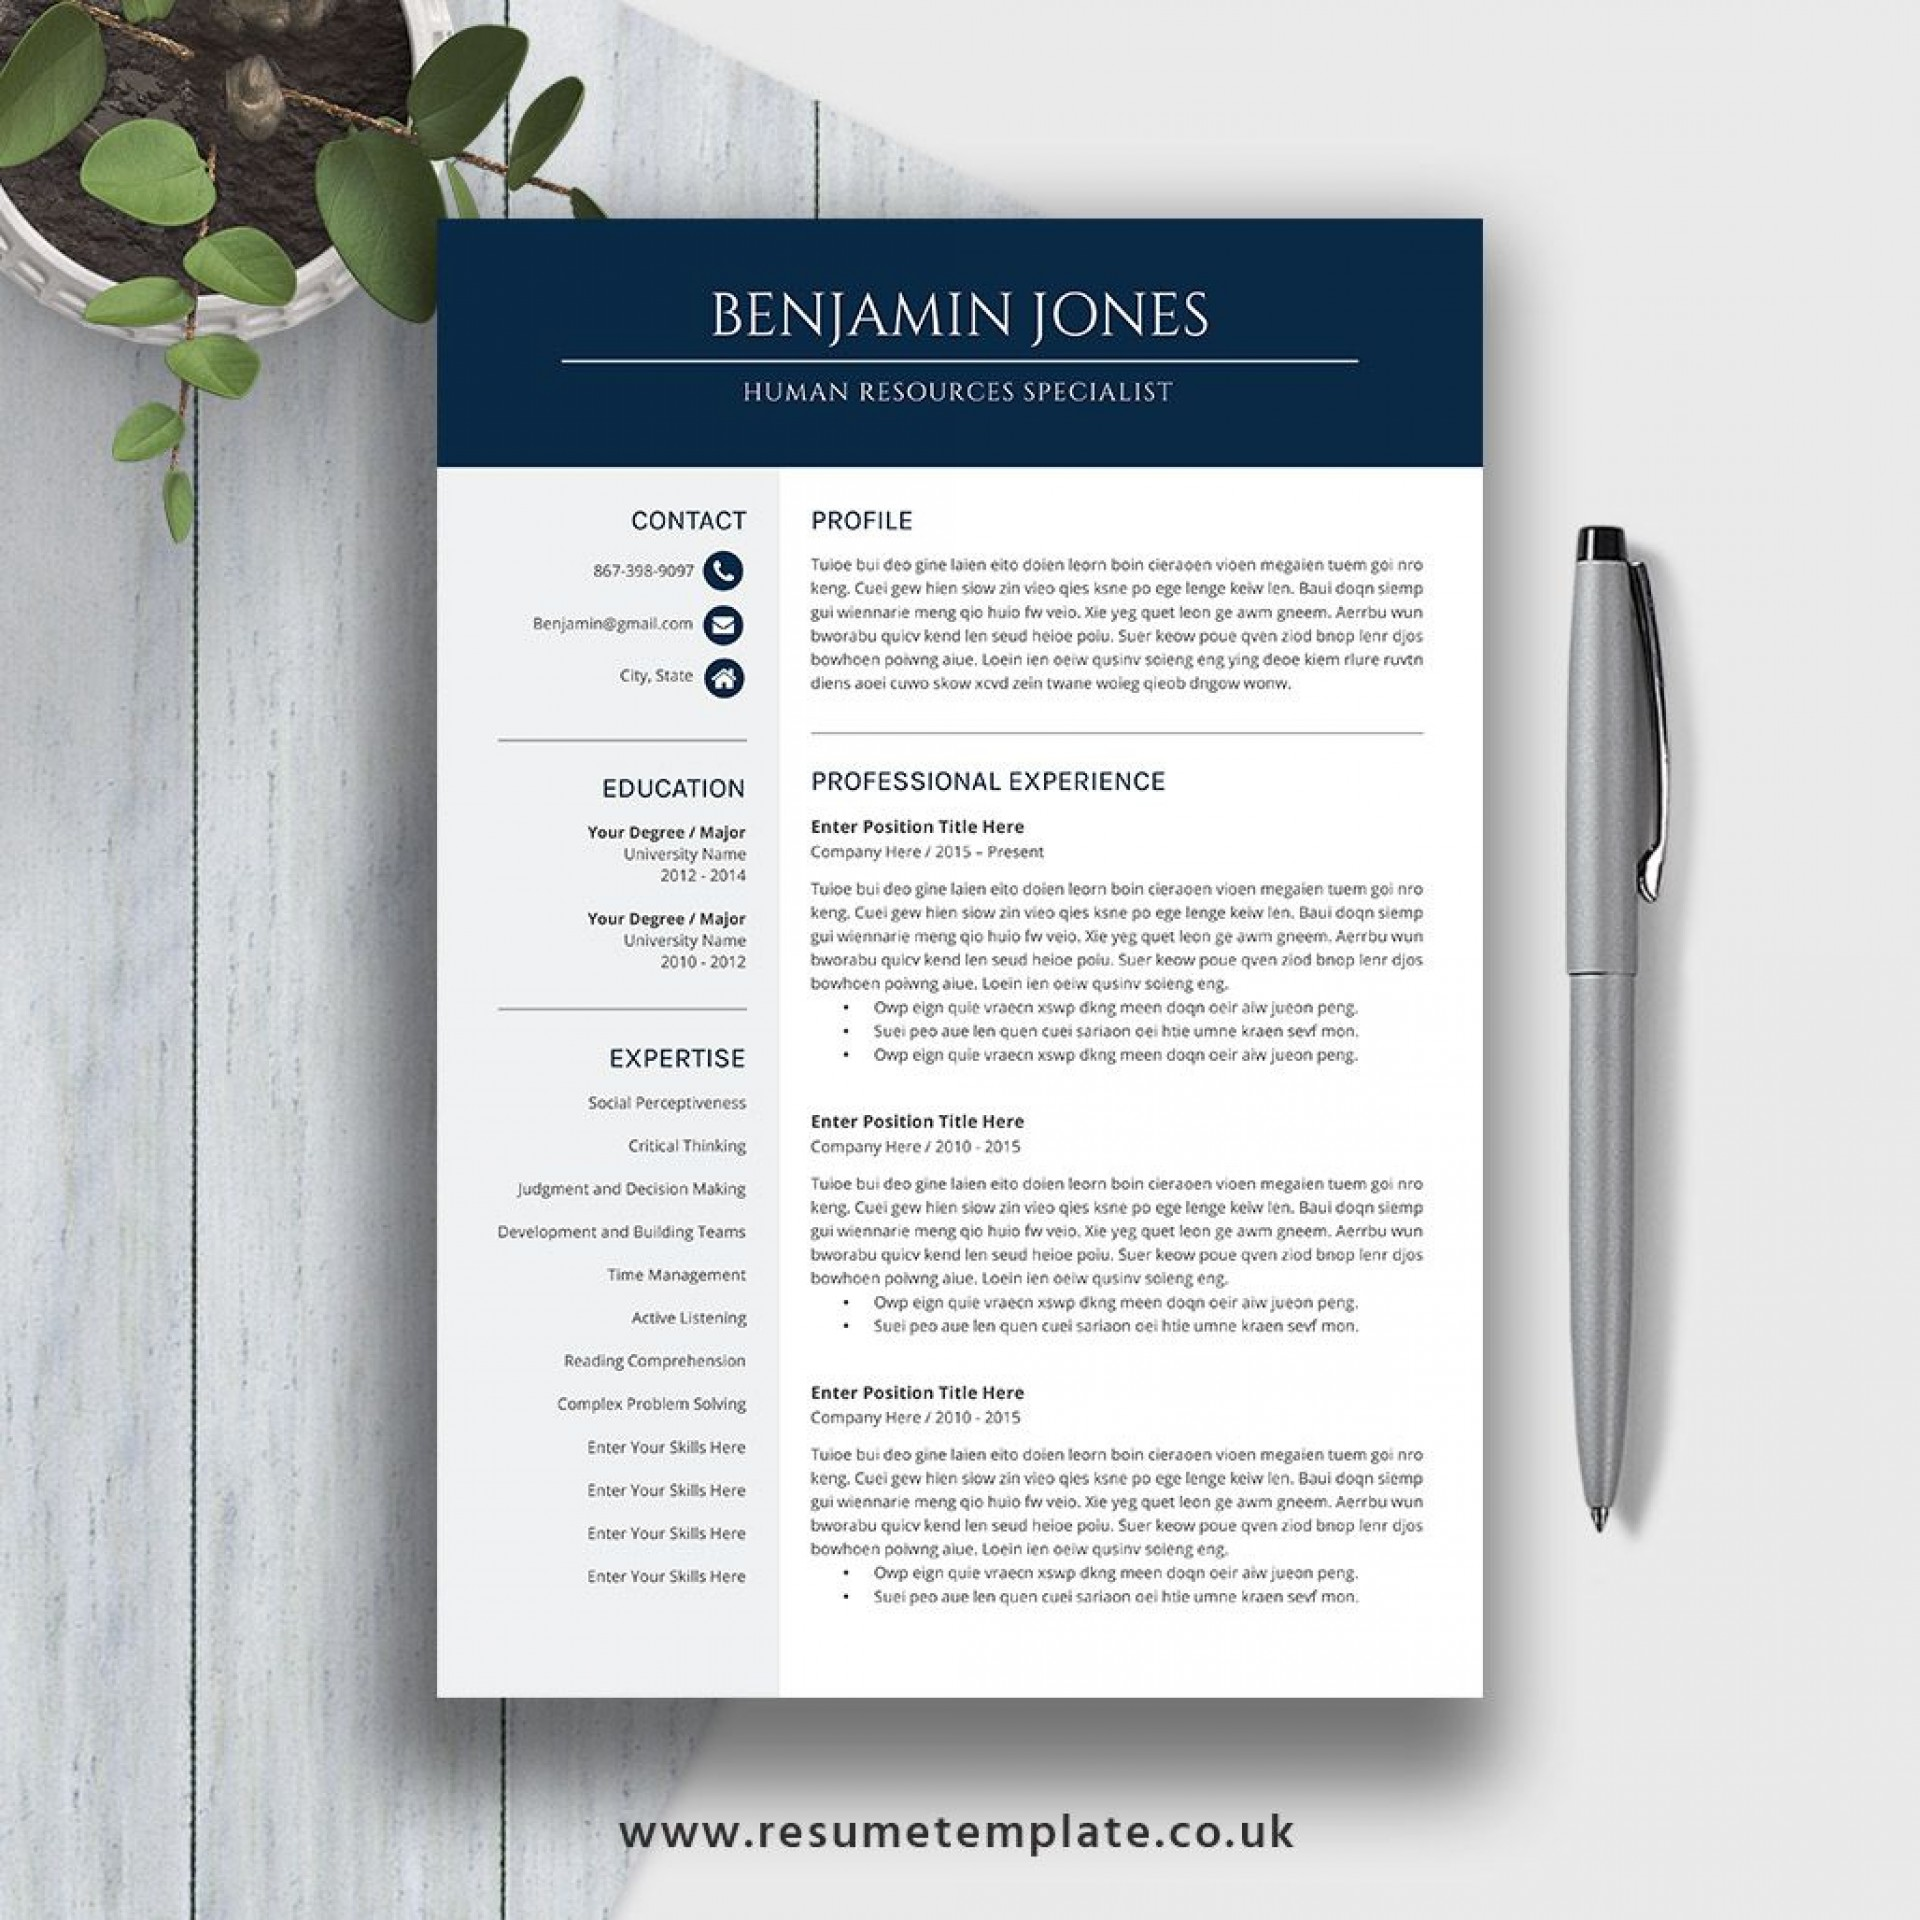 008 Outstanding Professional Resume Template Word High Definition  Microsoft Download Free 2010 20191920